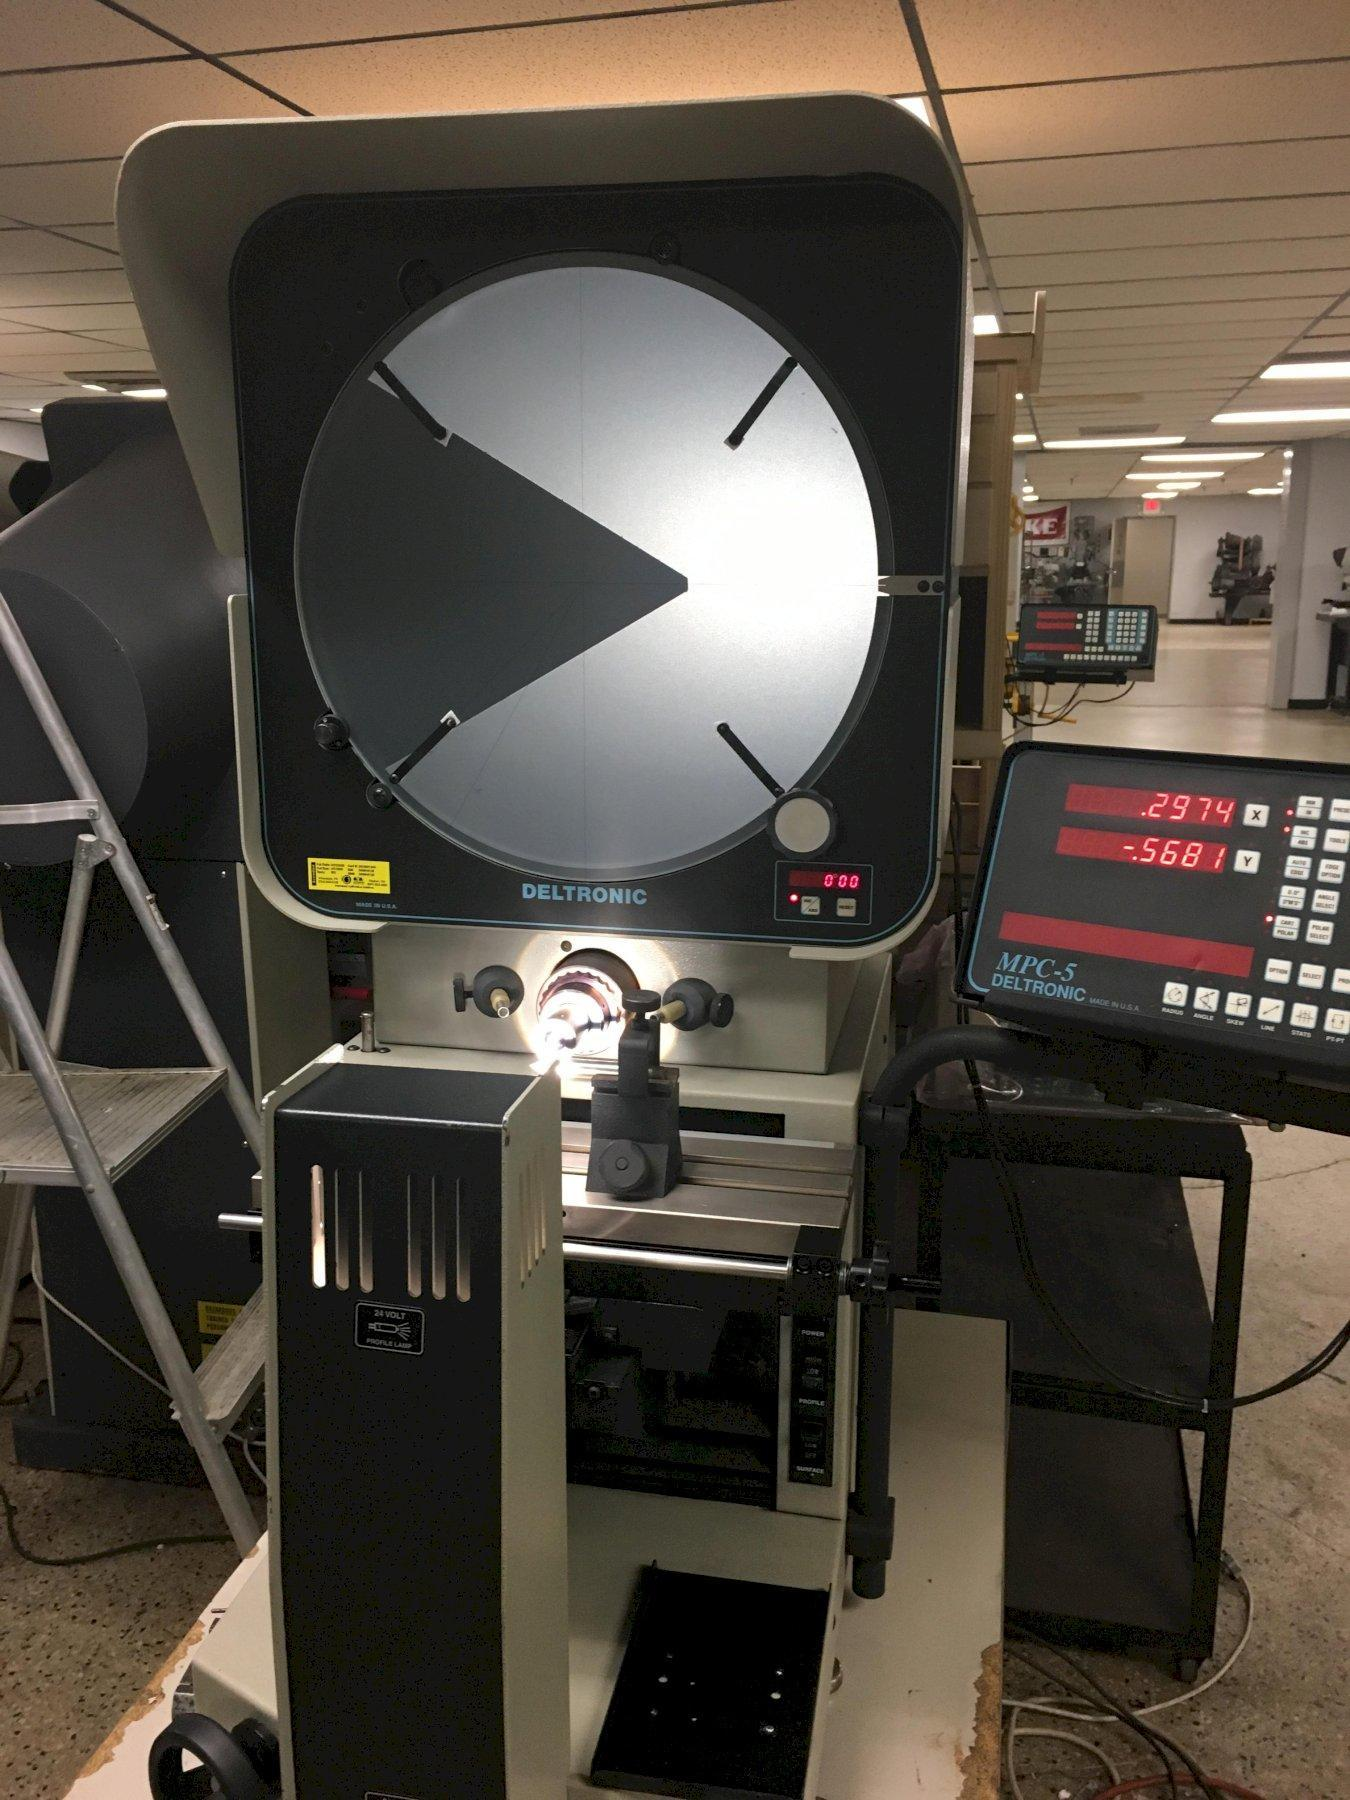 Deltronic DH216 Optical Comparator, S/N 399016120, New 1999.